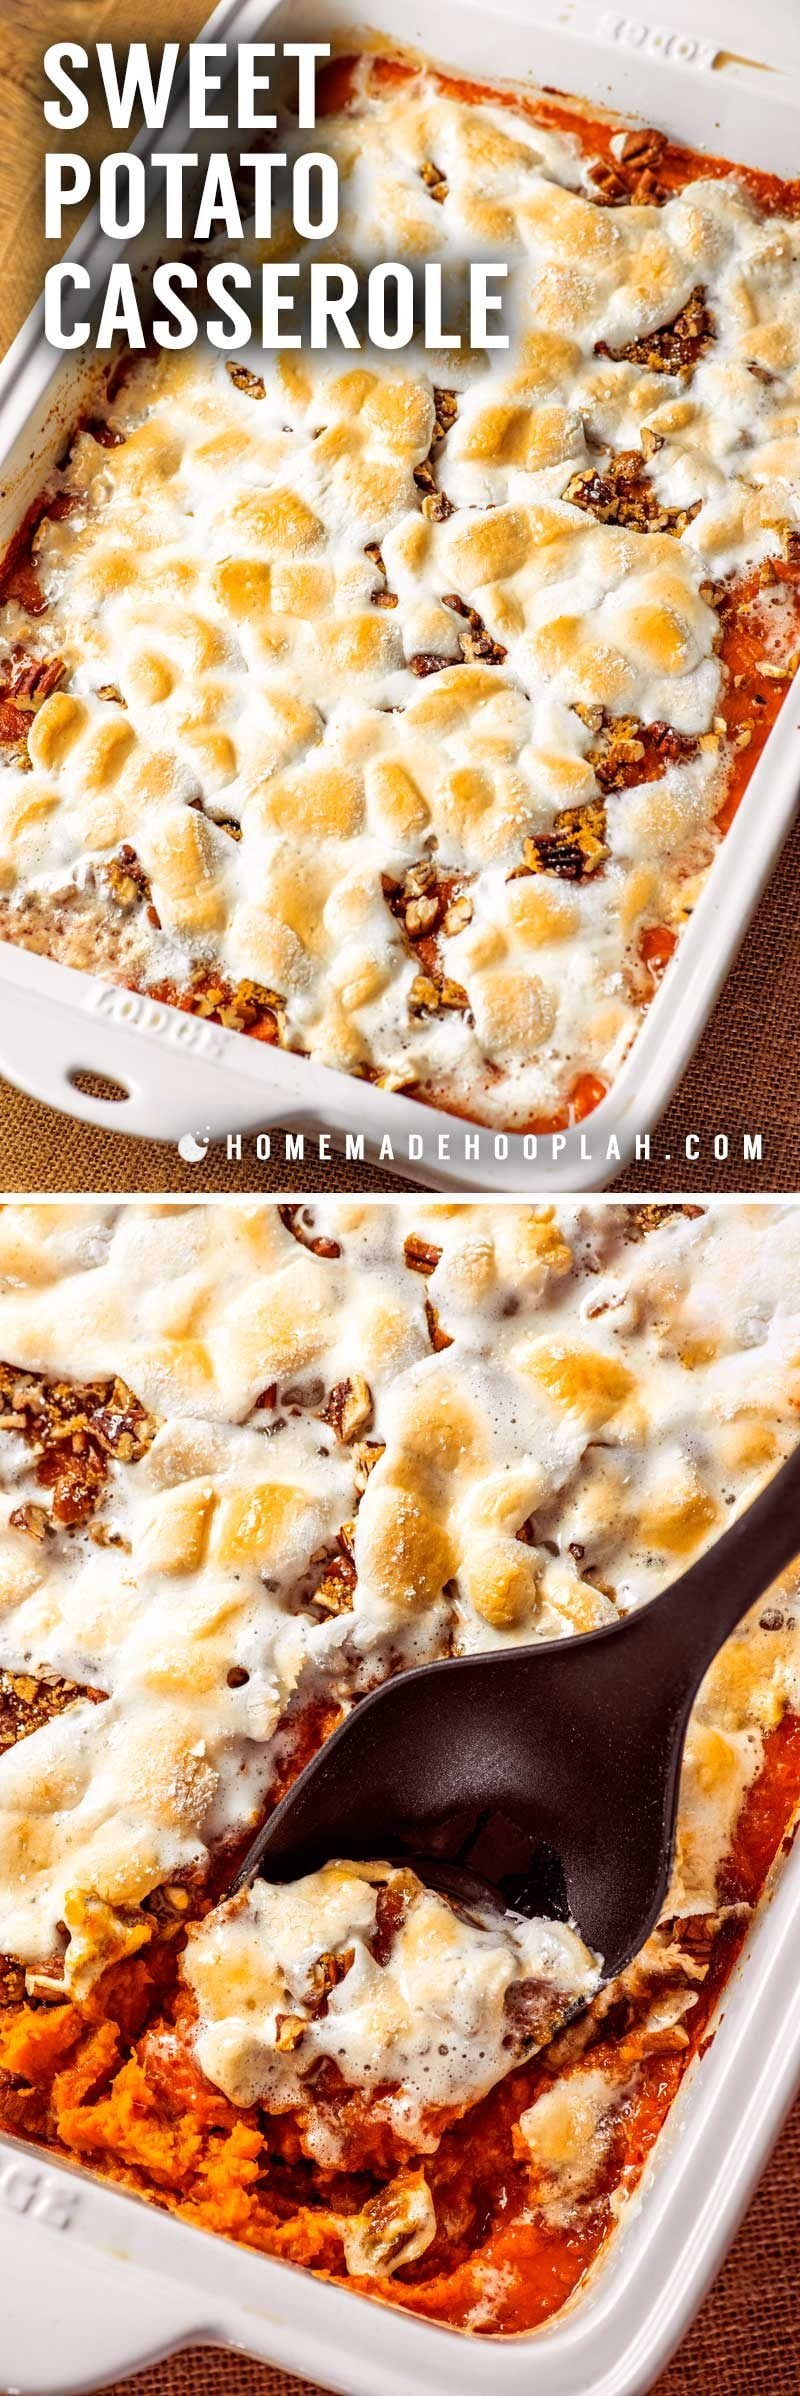 How to make sweet potato casserole with marshmallows.